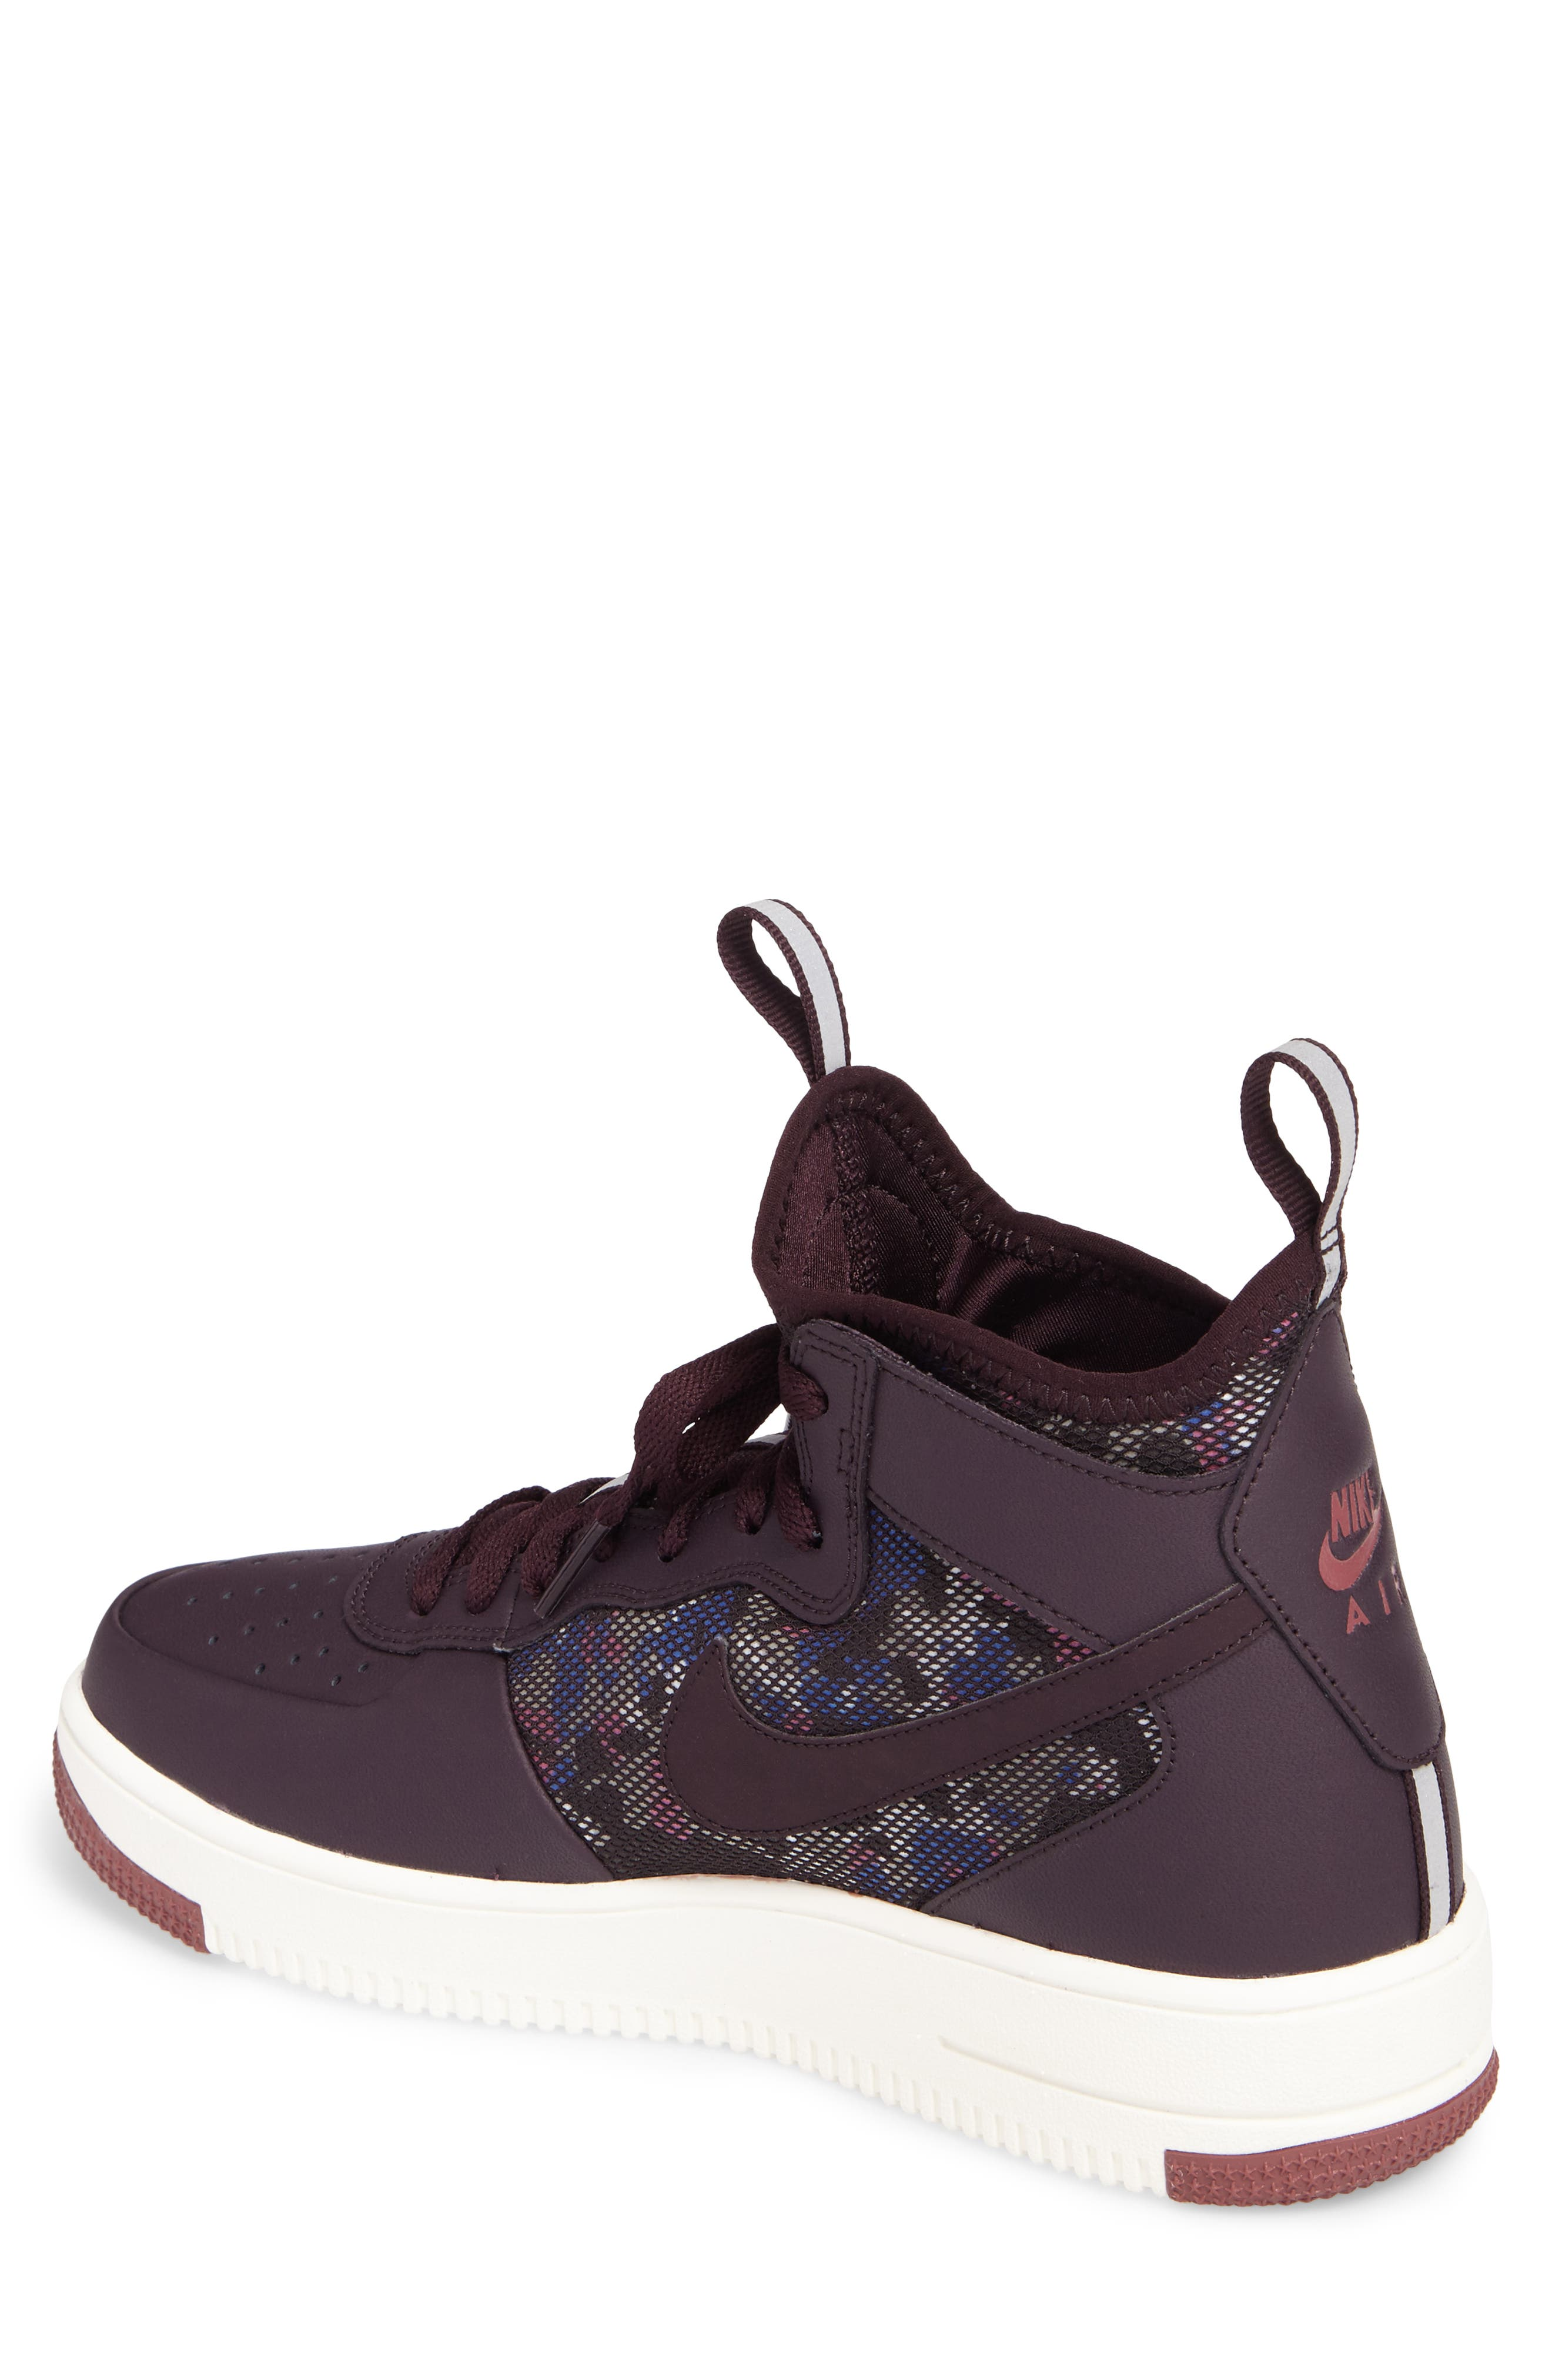 Air Force 1 Ultraforce Mid Sneaker,                             Alternate thumbnail 2, color,                             Port Wine/ Summit White